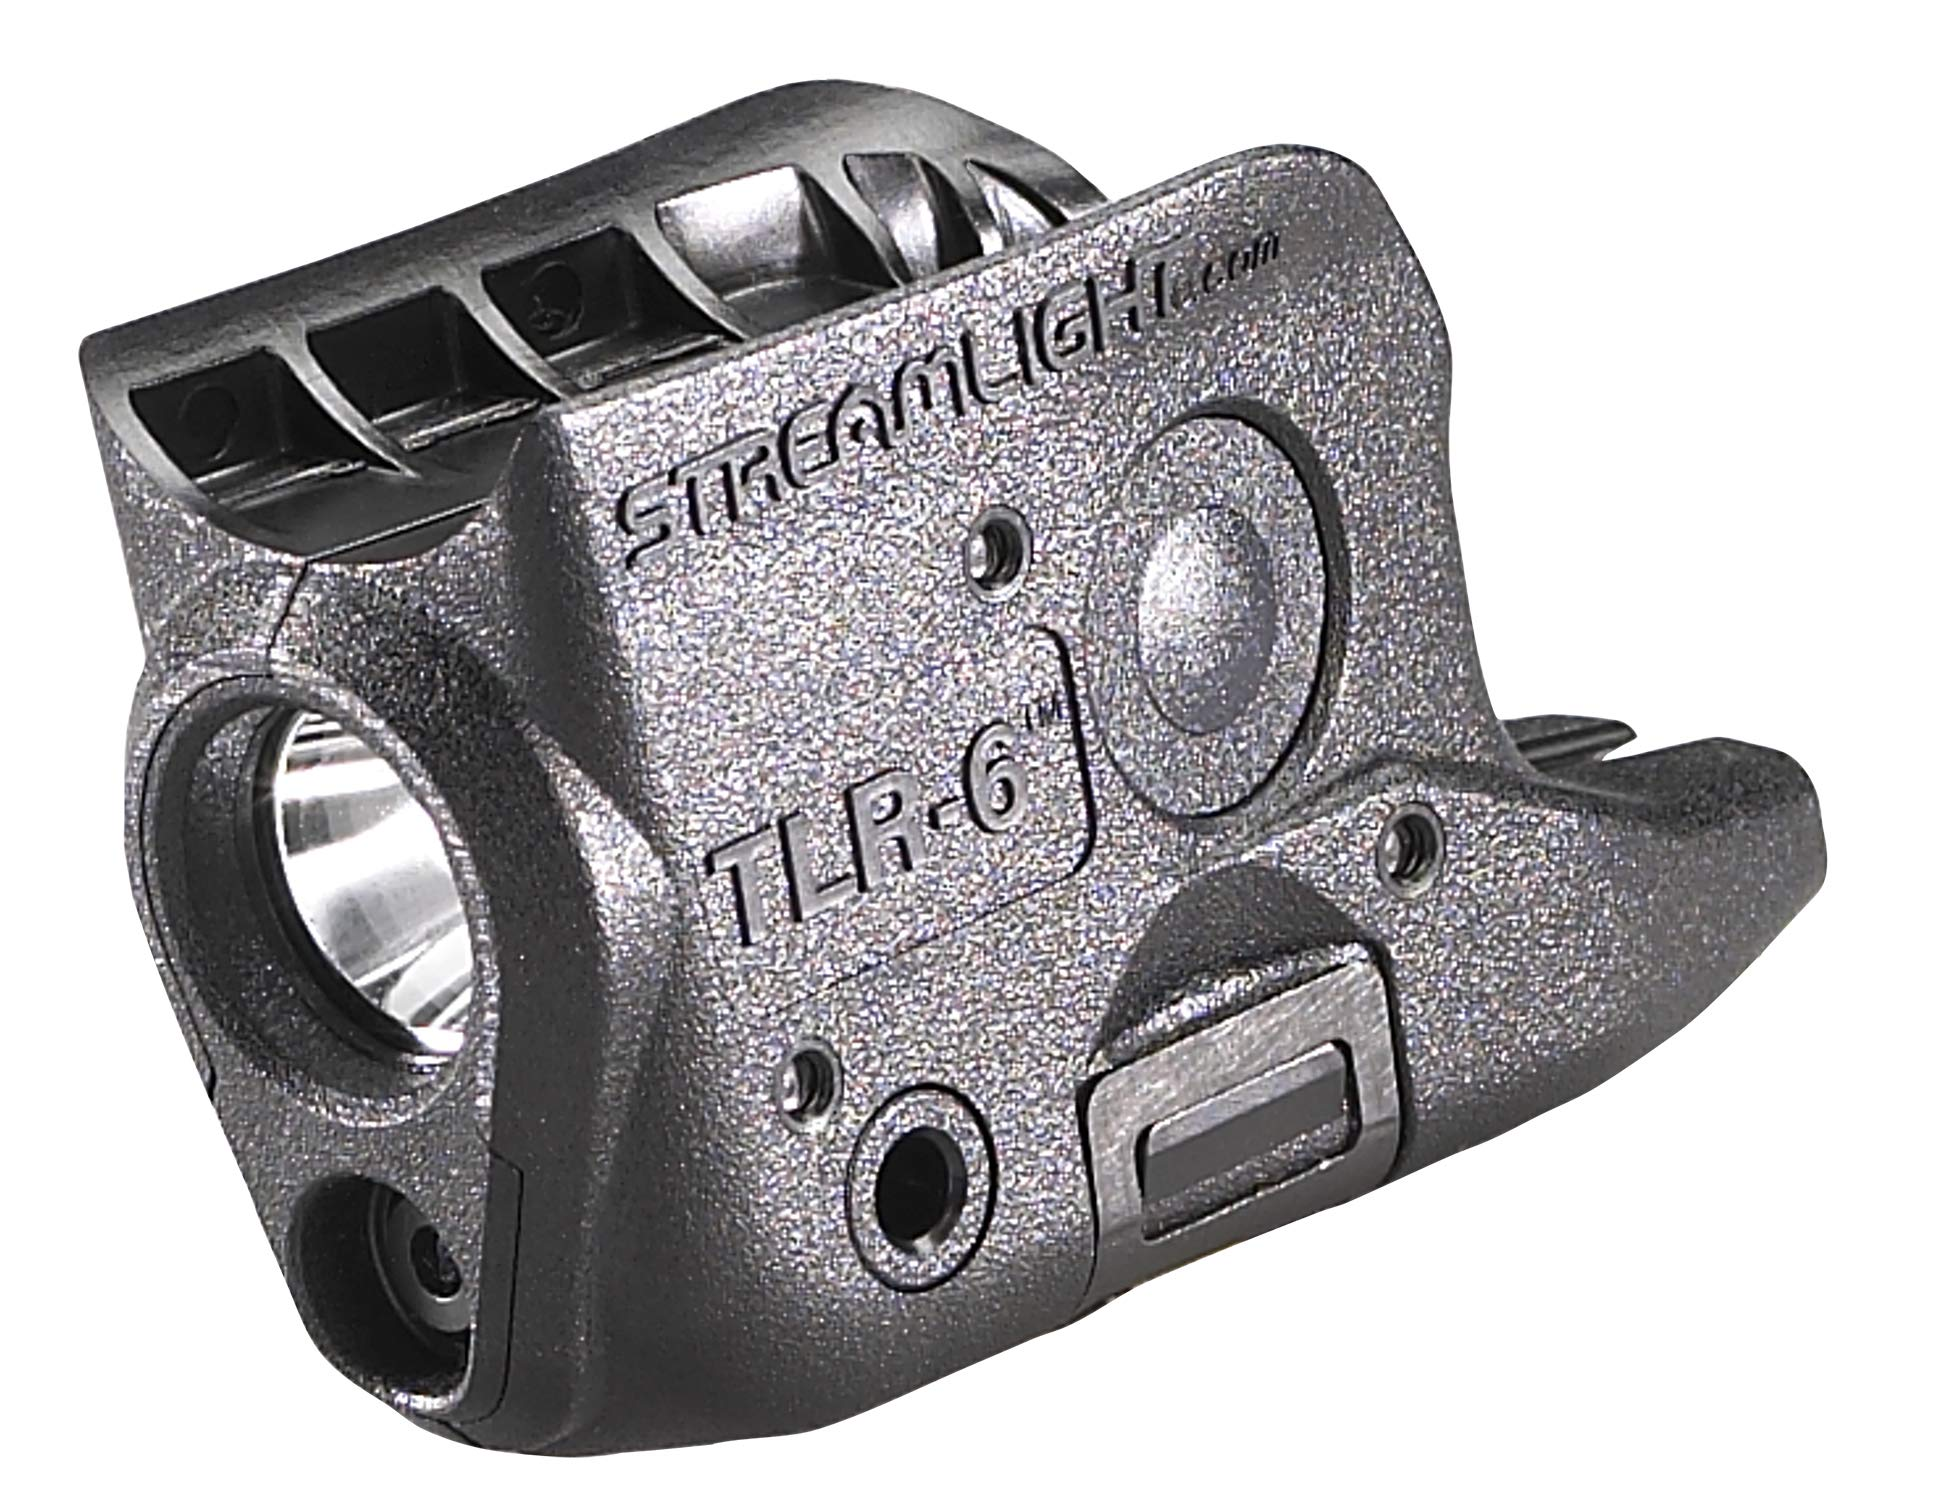 Streamlight 69270 TLR-6 Tactical Pistol Mount Flashlight by Streamlight